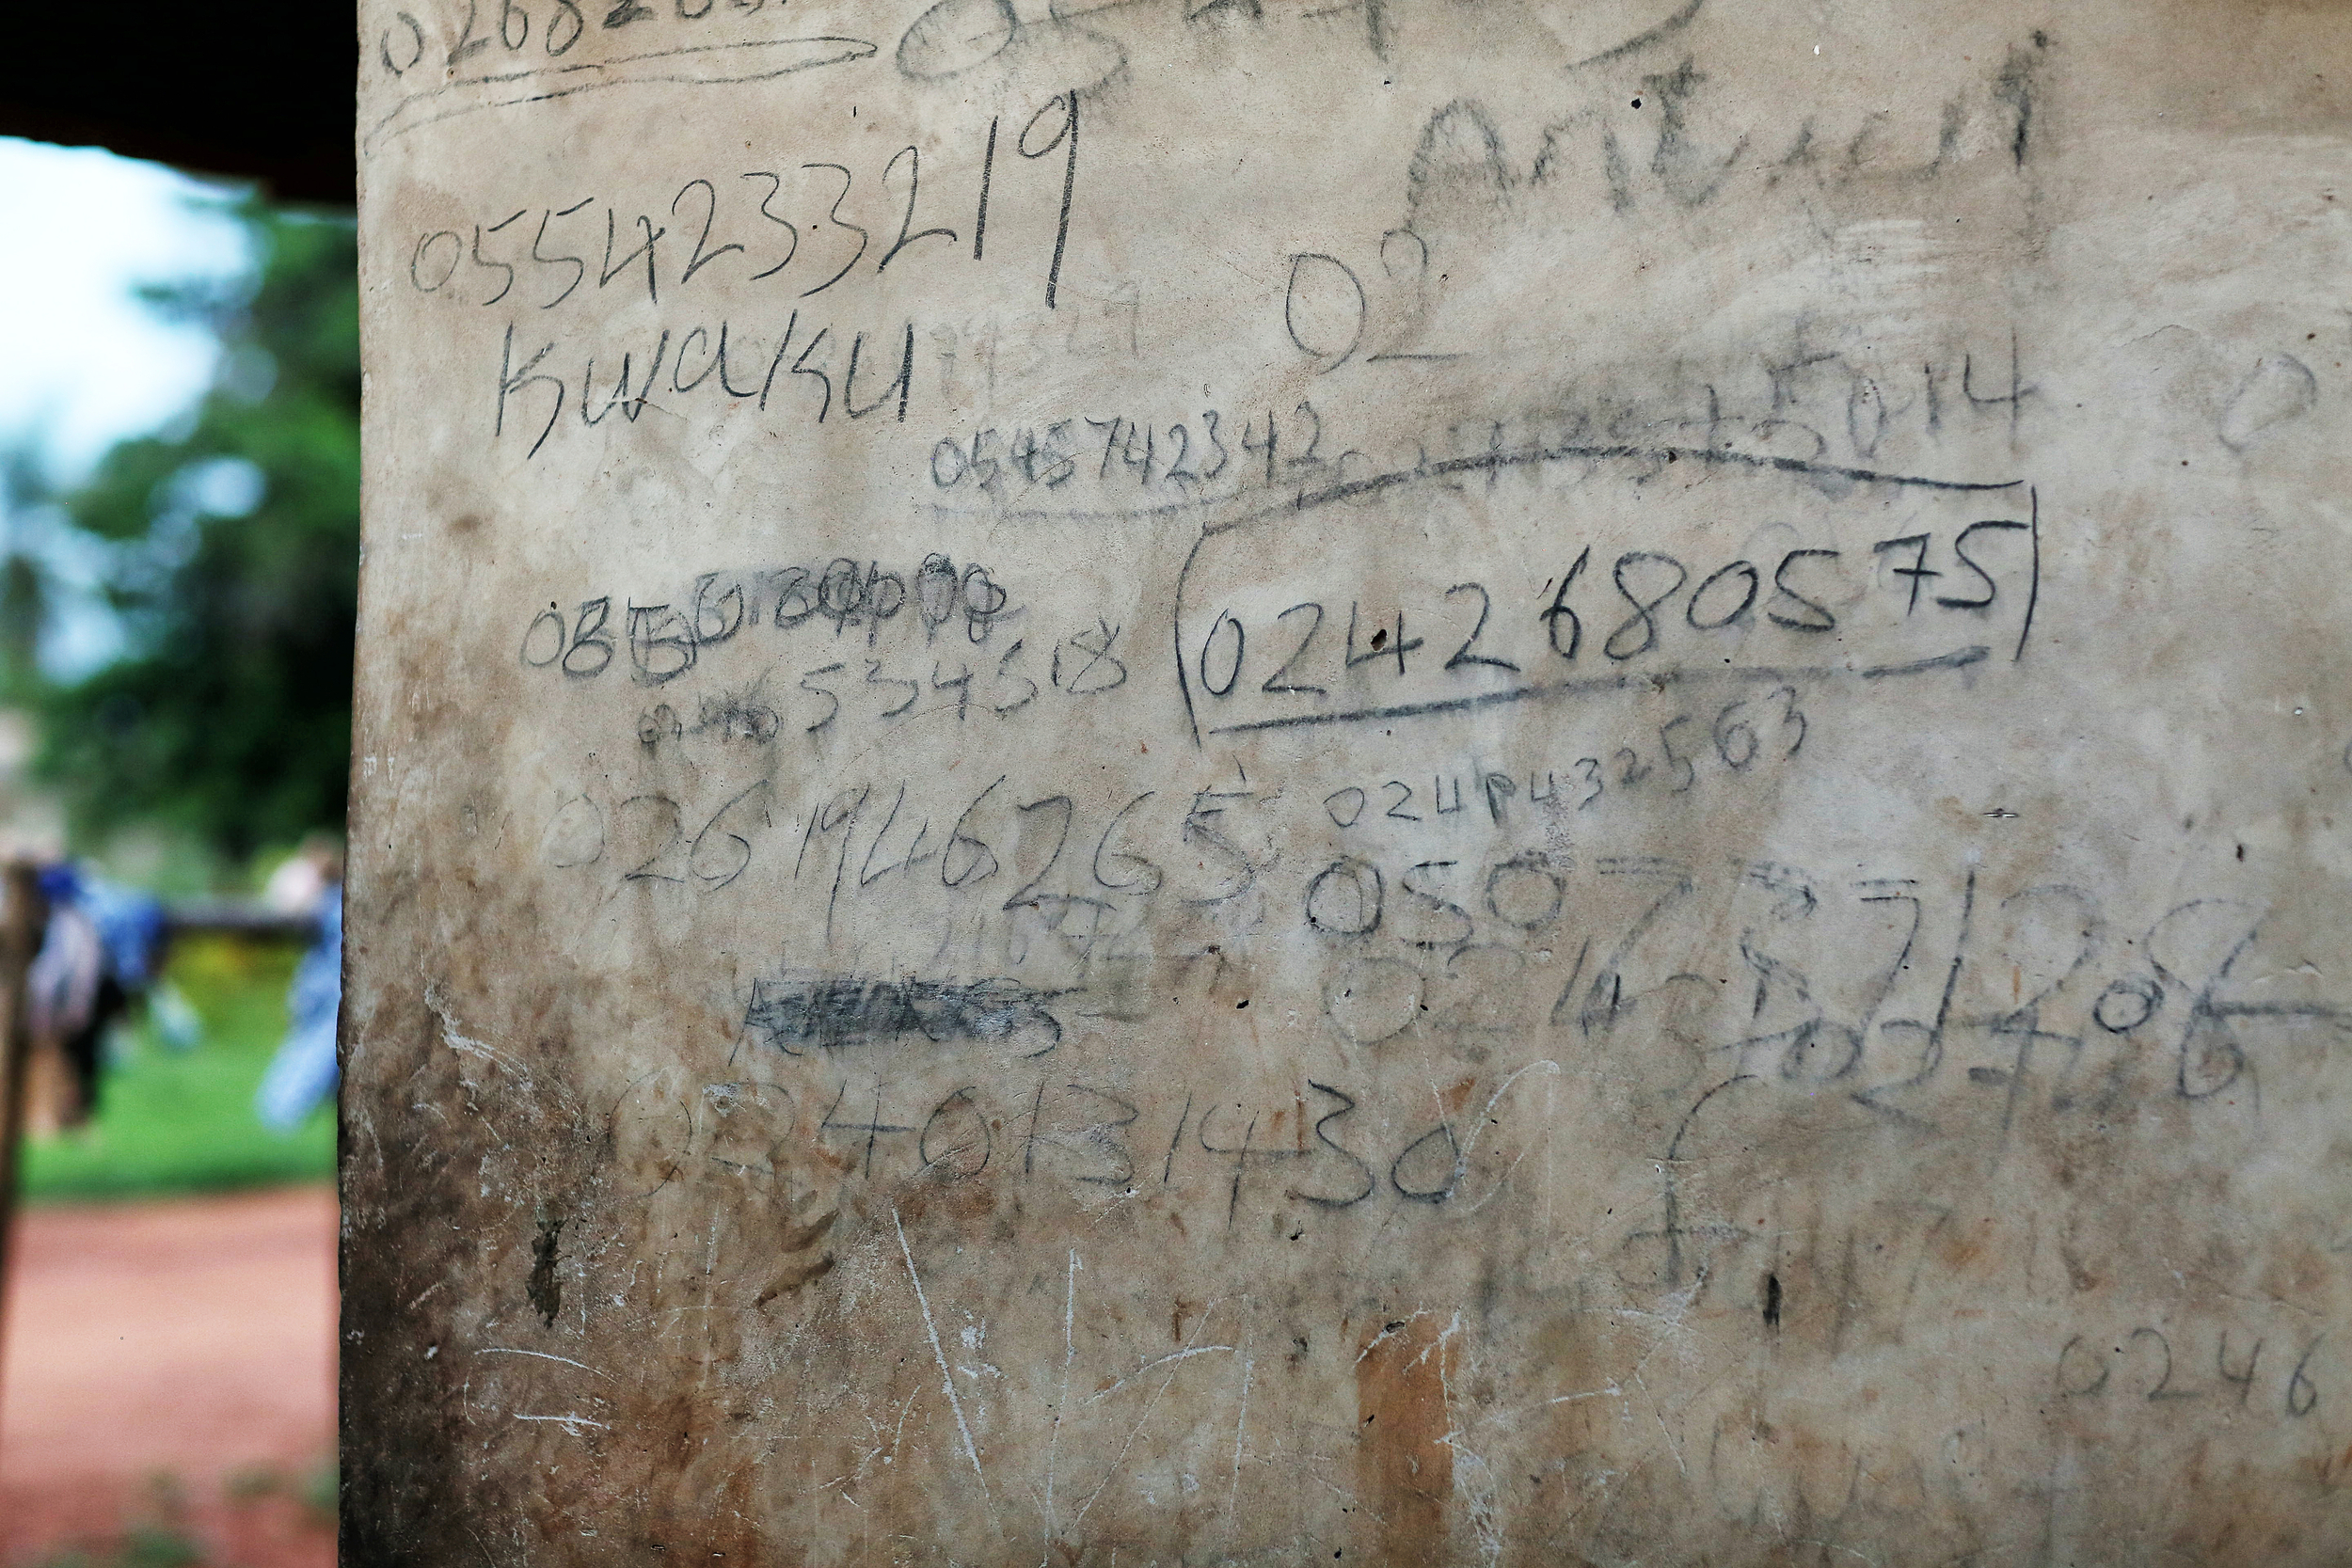 A series of phone numbers on a wall in Patience's family home.